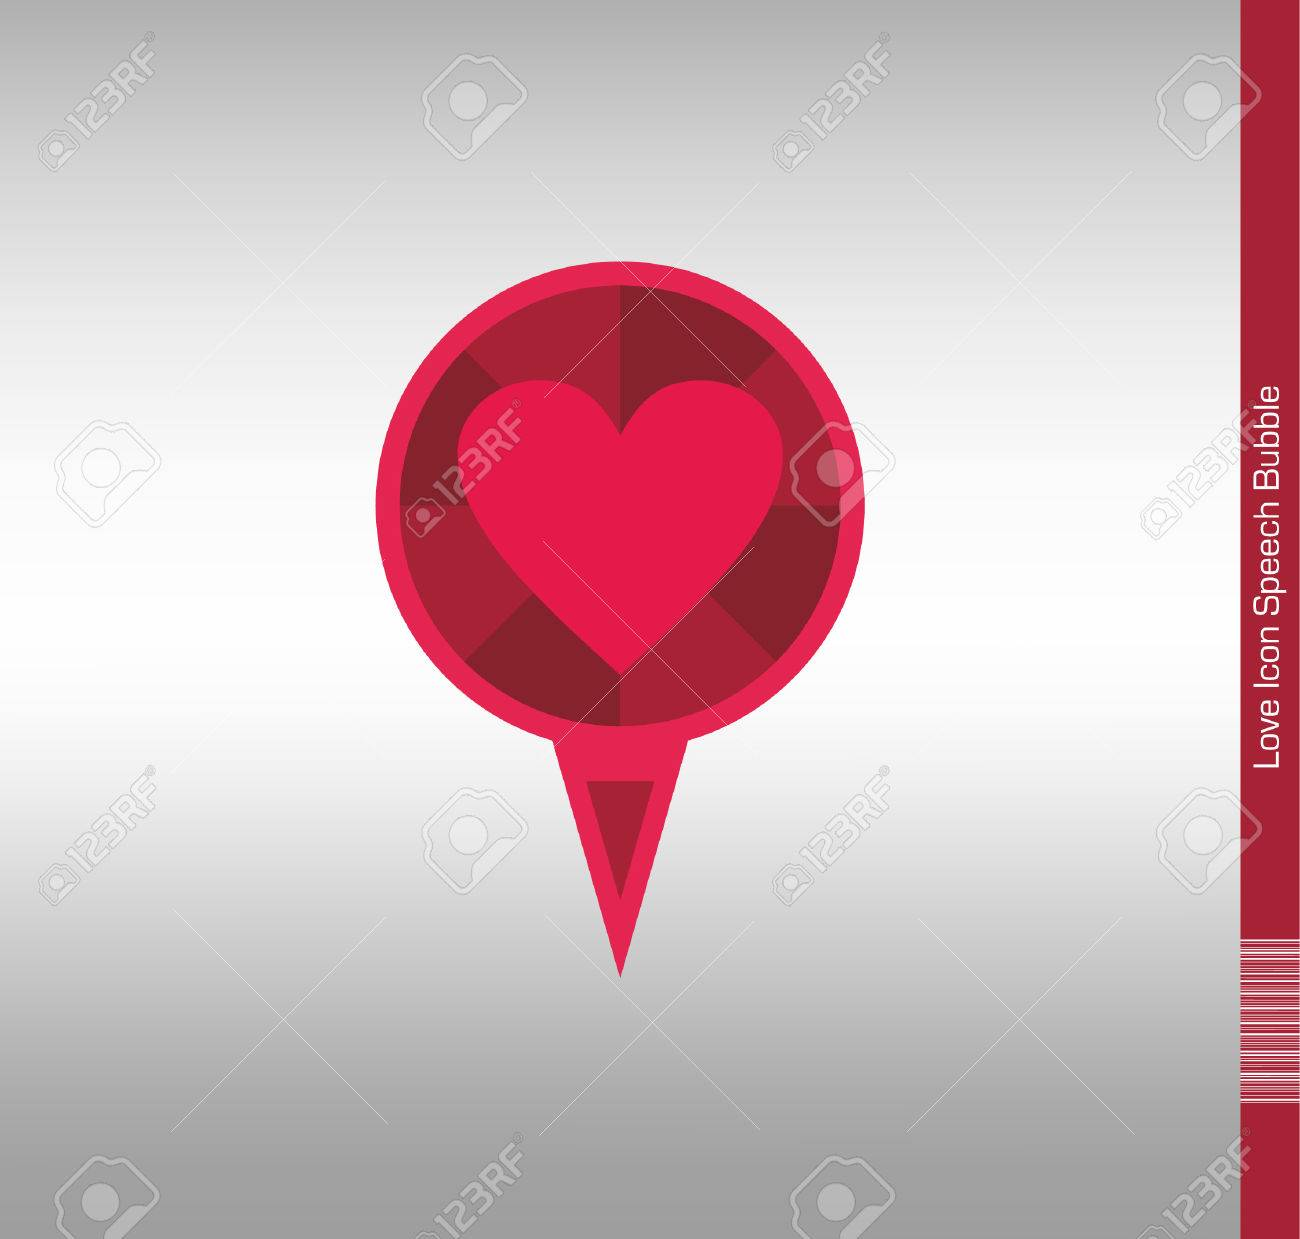 Pin Icon With Heart Symbol Writable Space For Dates And Short